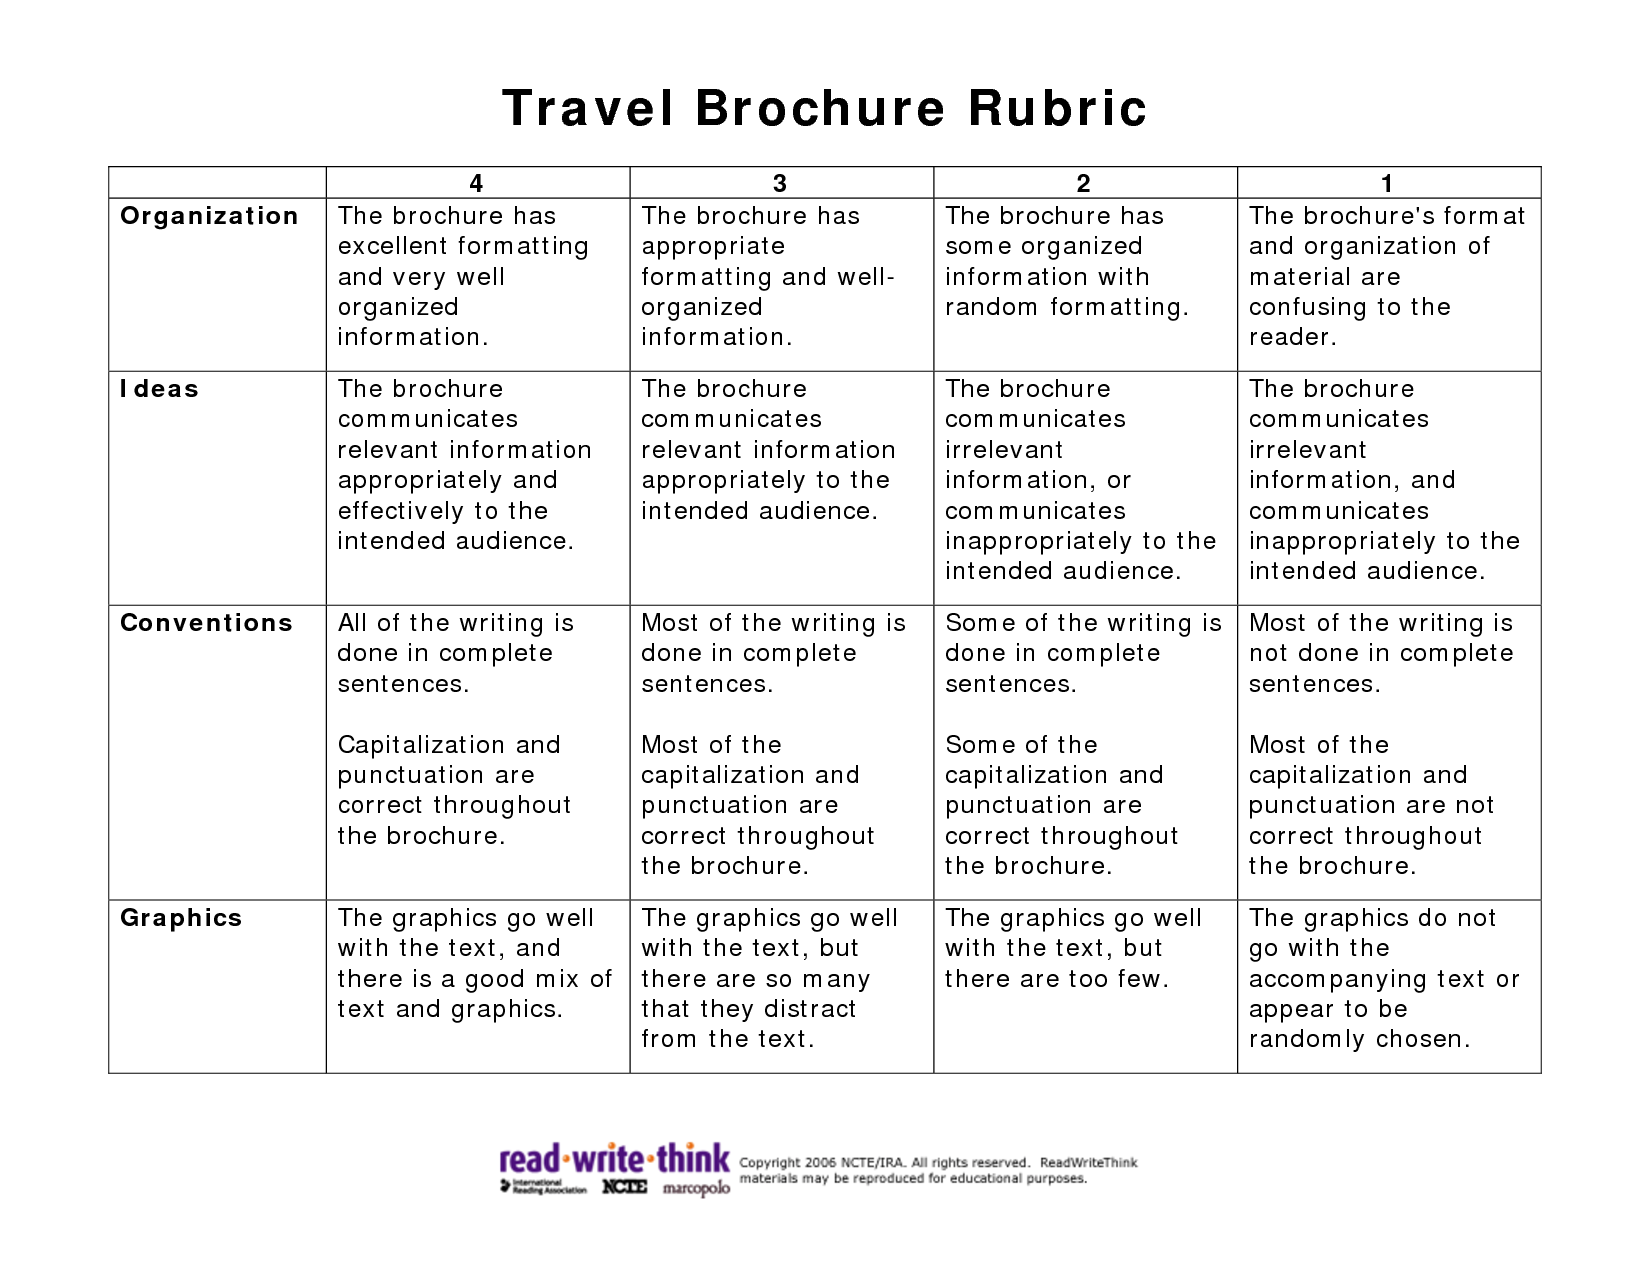 travel brochure rubric Social studies worksheets, Travel